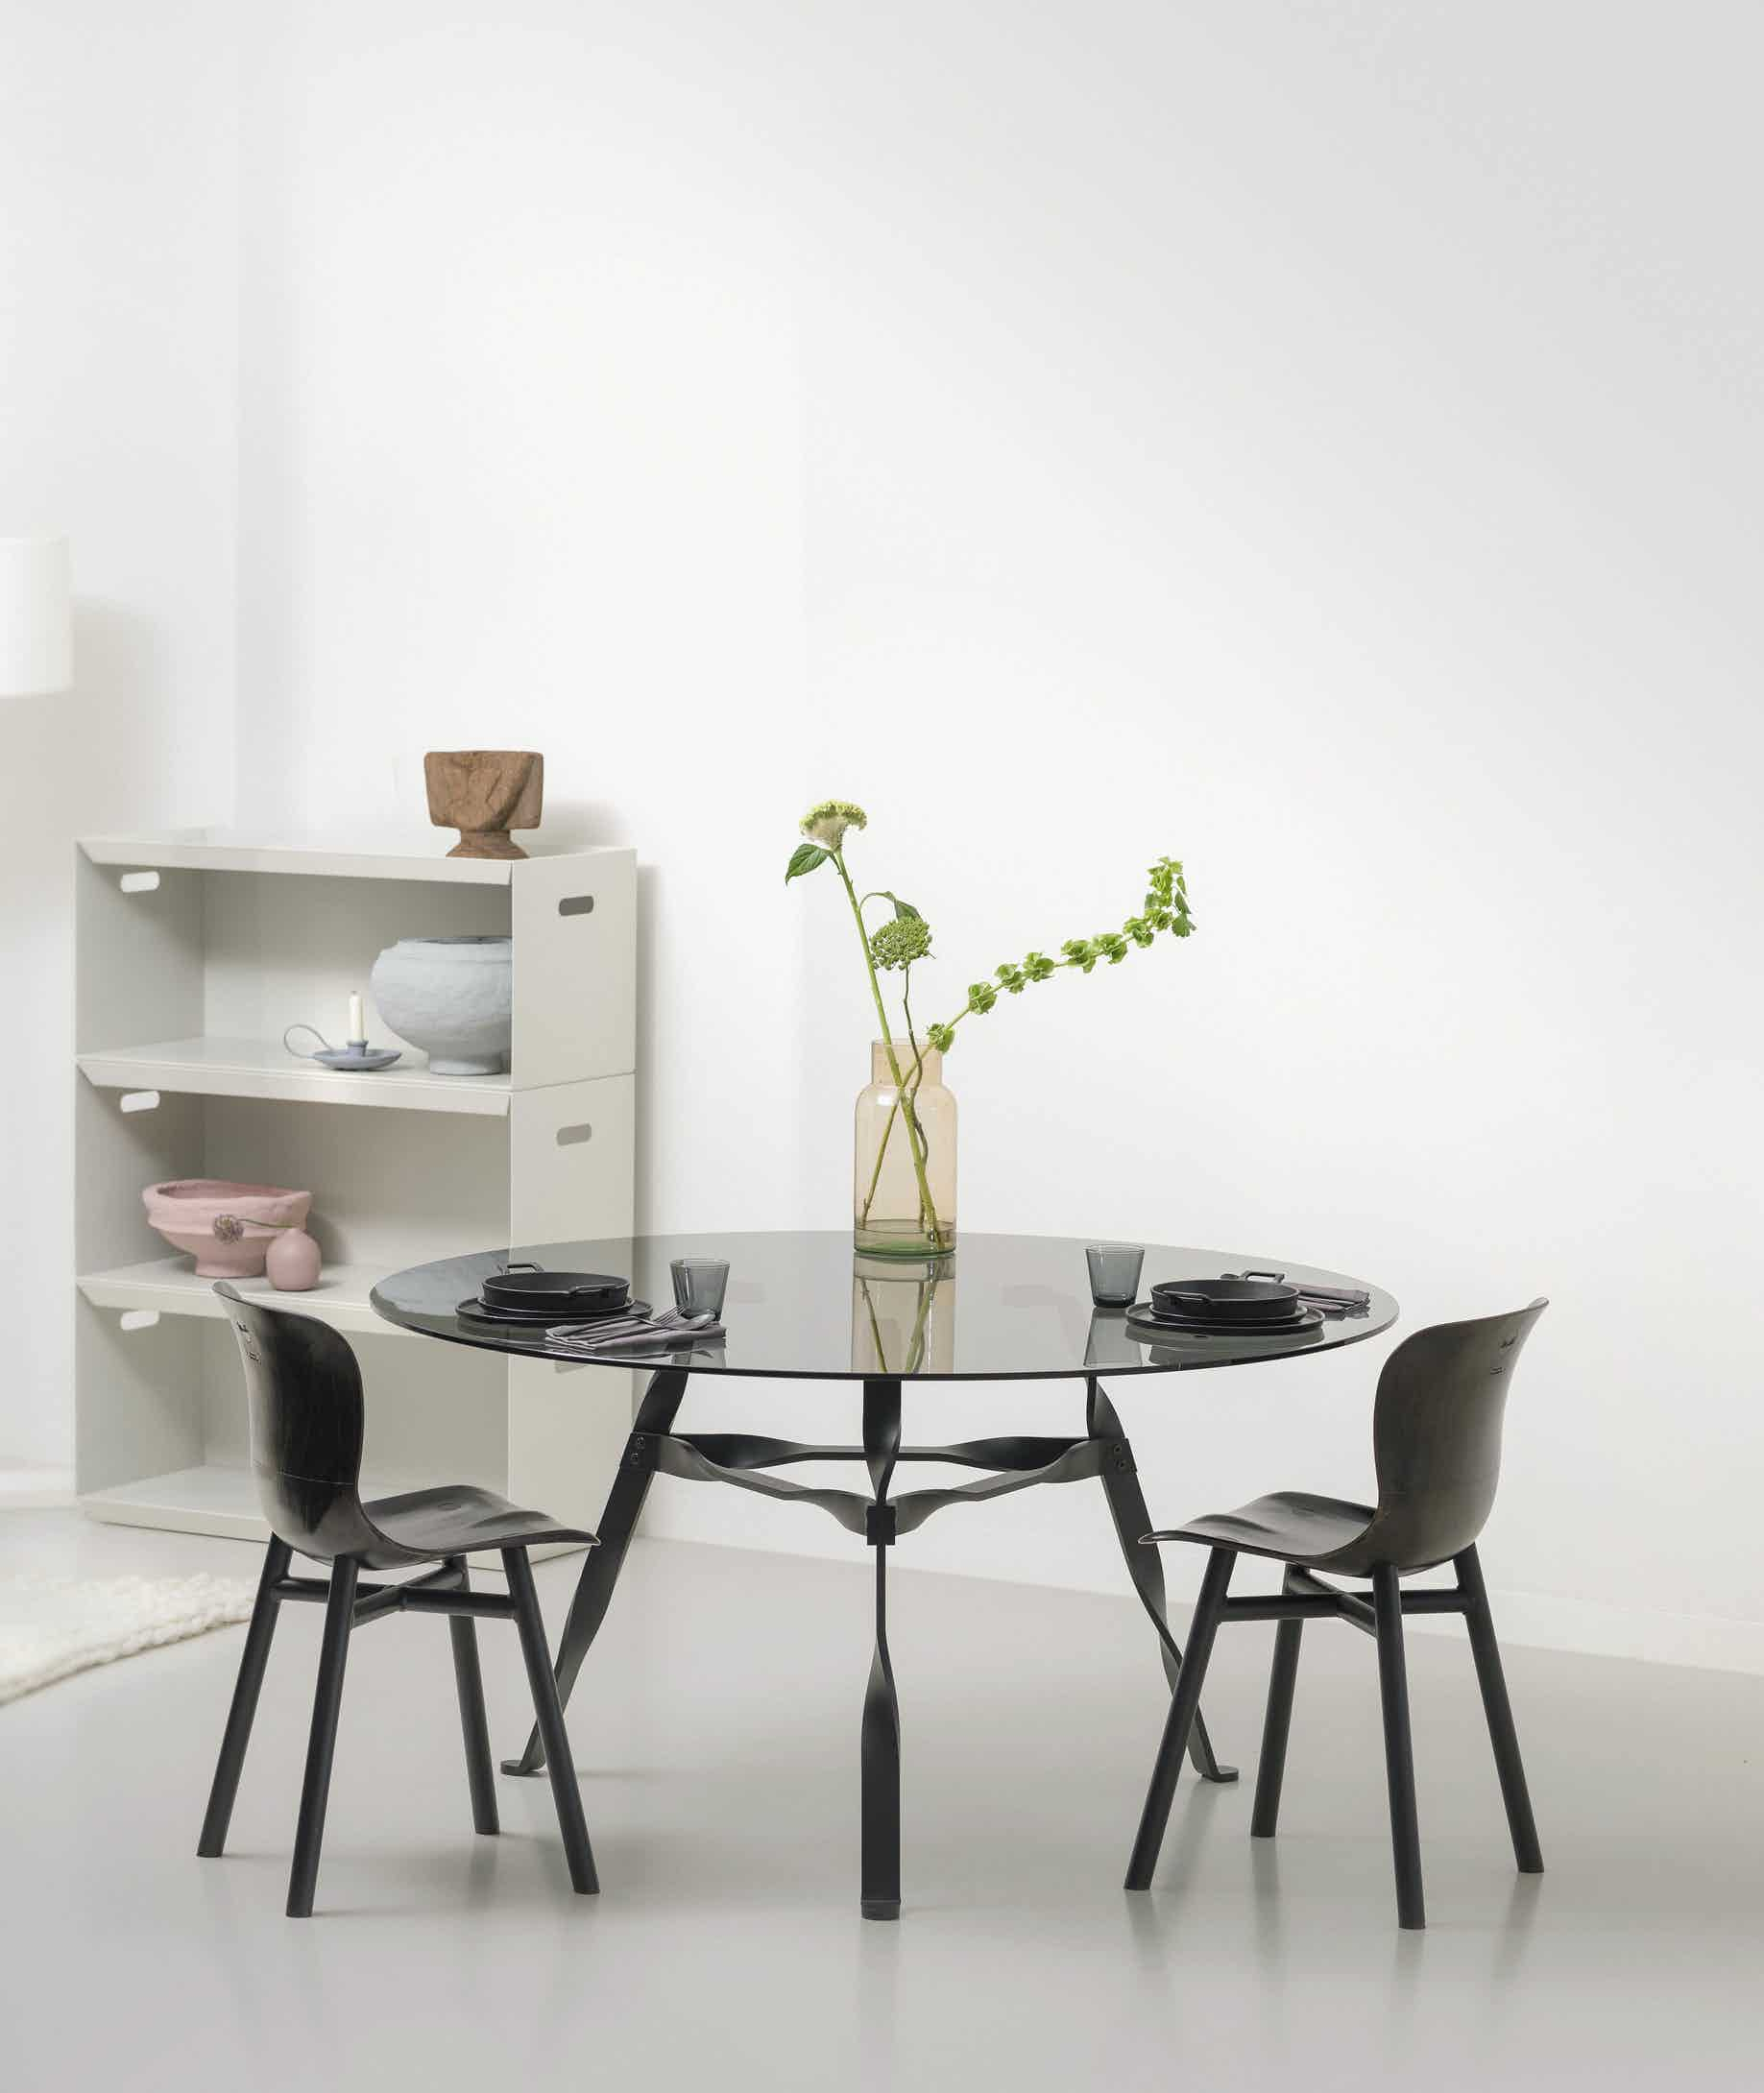 functionals twist glass table at haute living